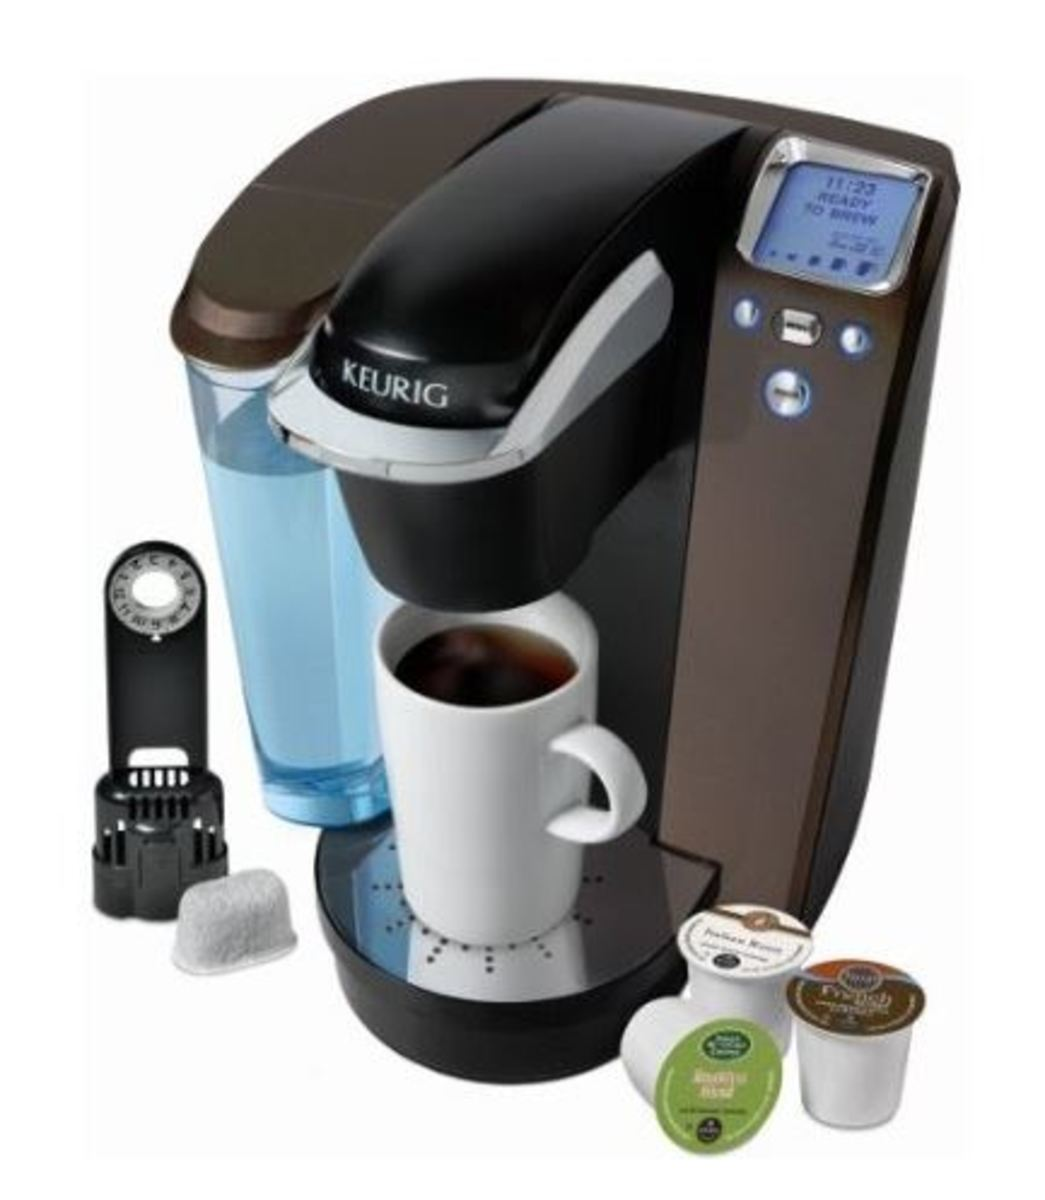 Keurig B75 single brewer system